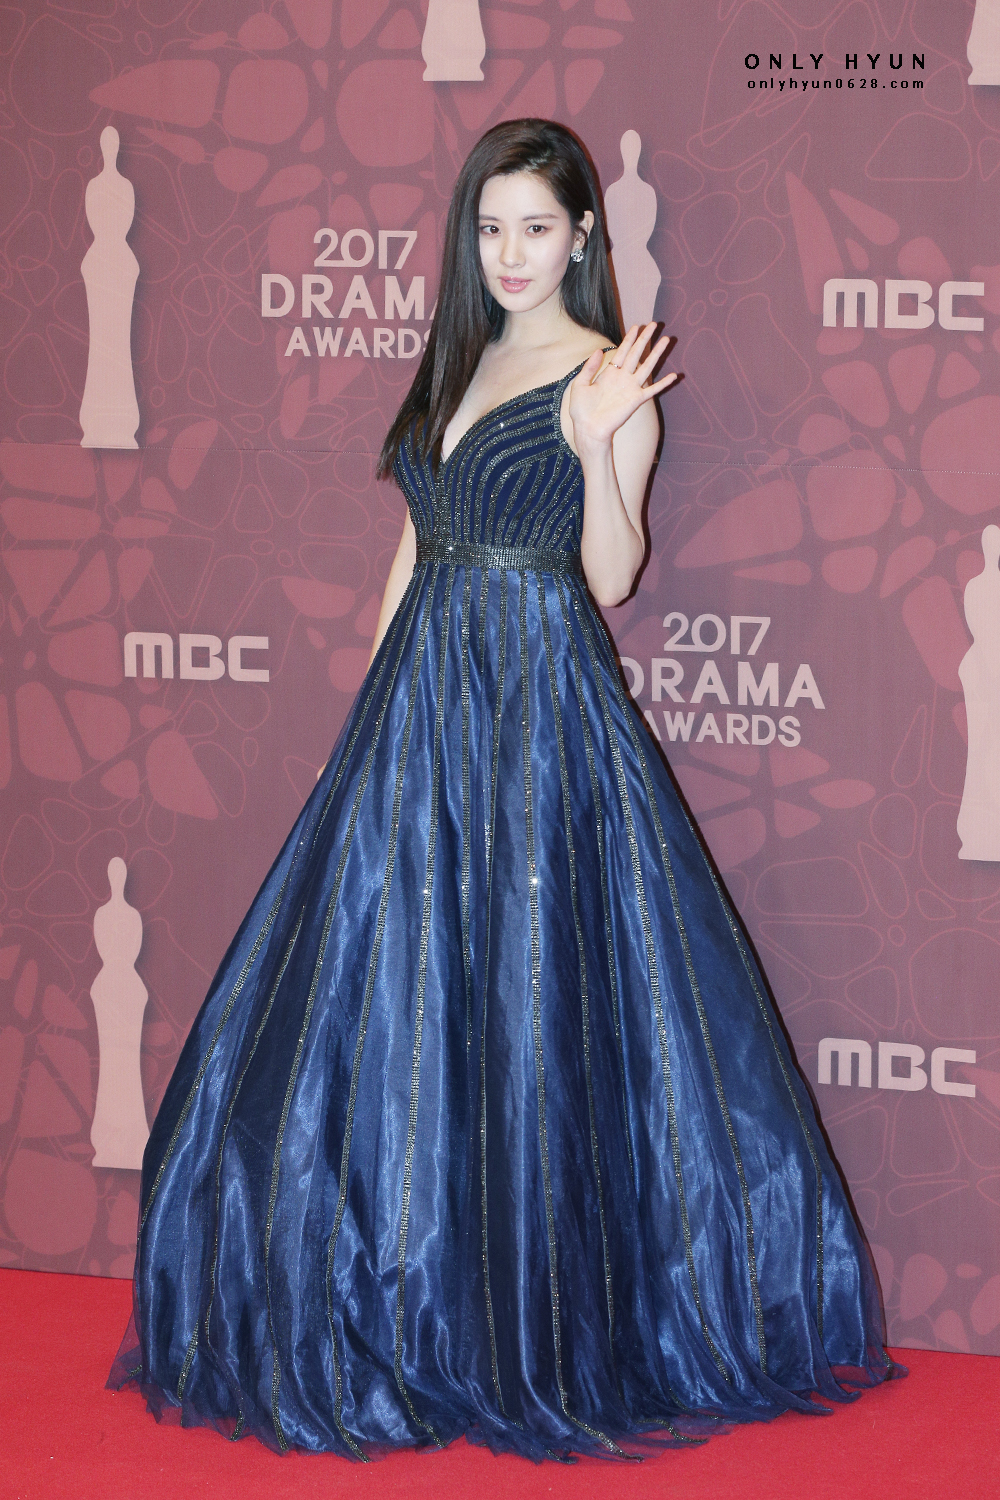 Index of /data/soshi/pictures/seohyun/awards/171230-mbc-drama-award/